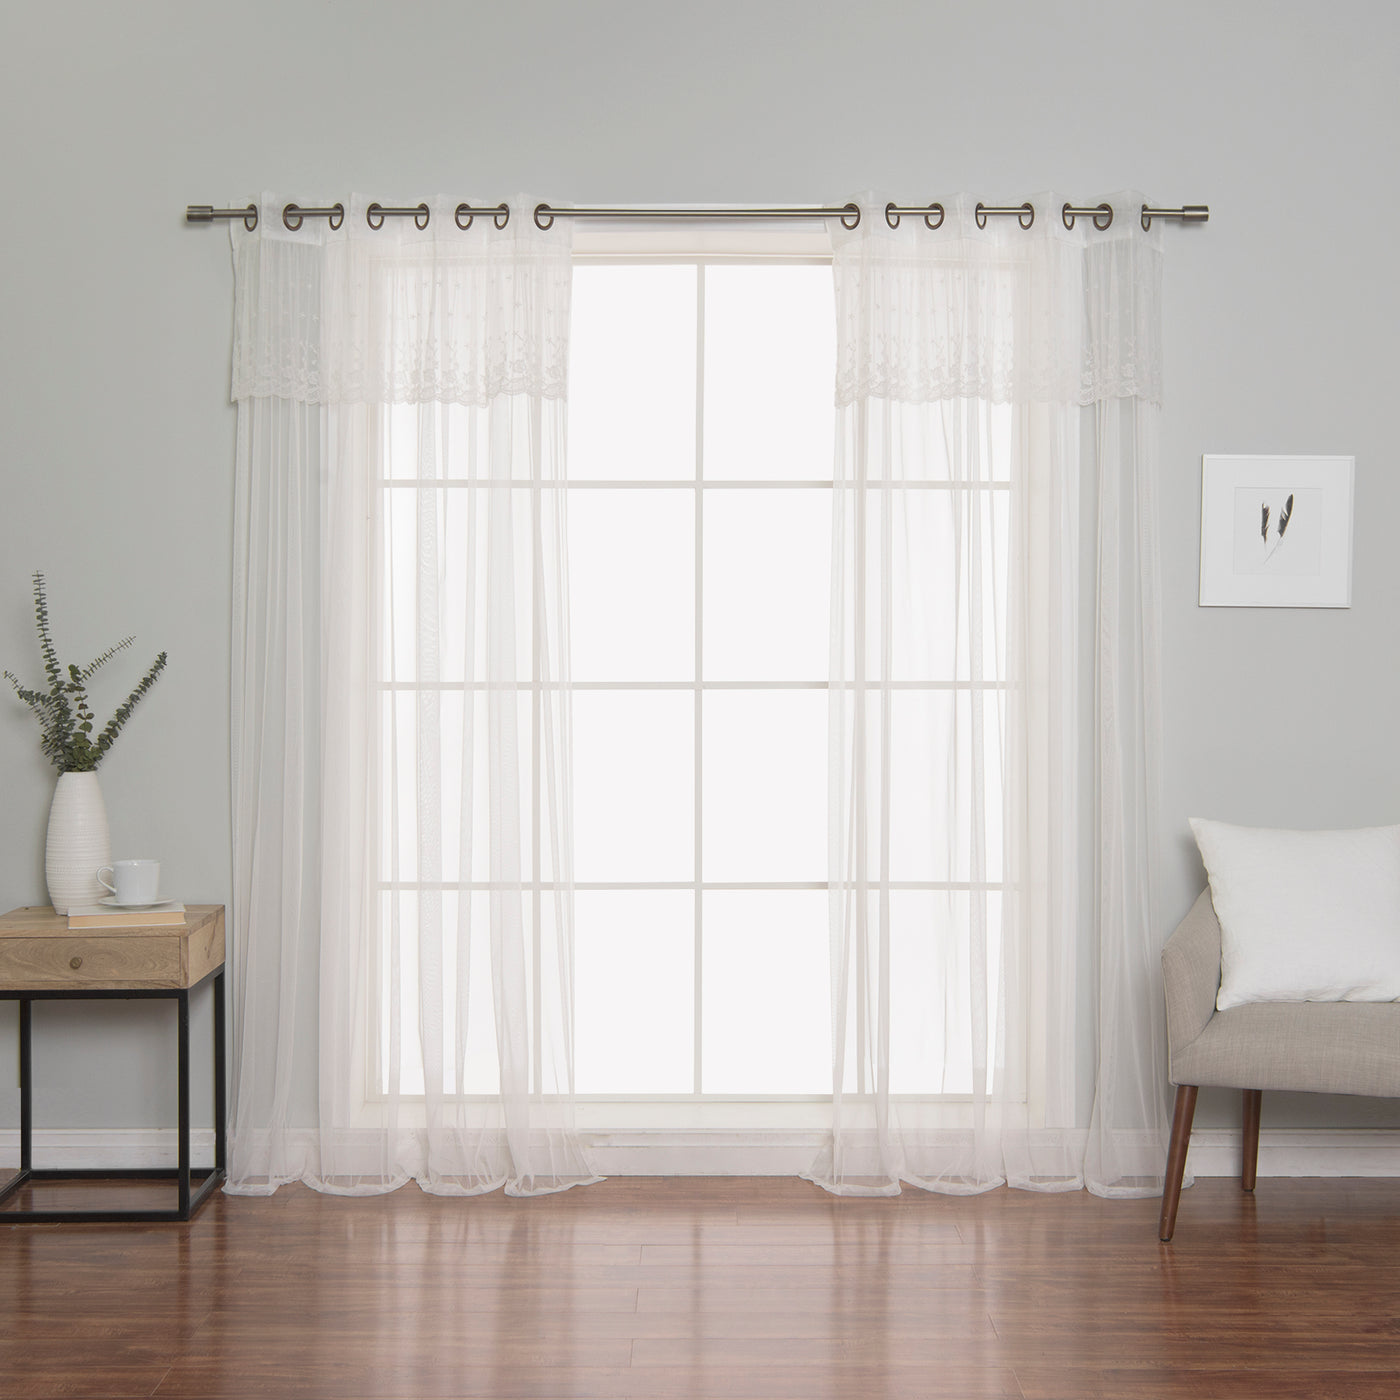 Tulle Lace with Attached Valance Curtains